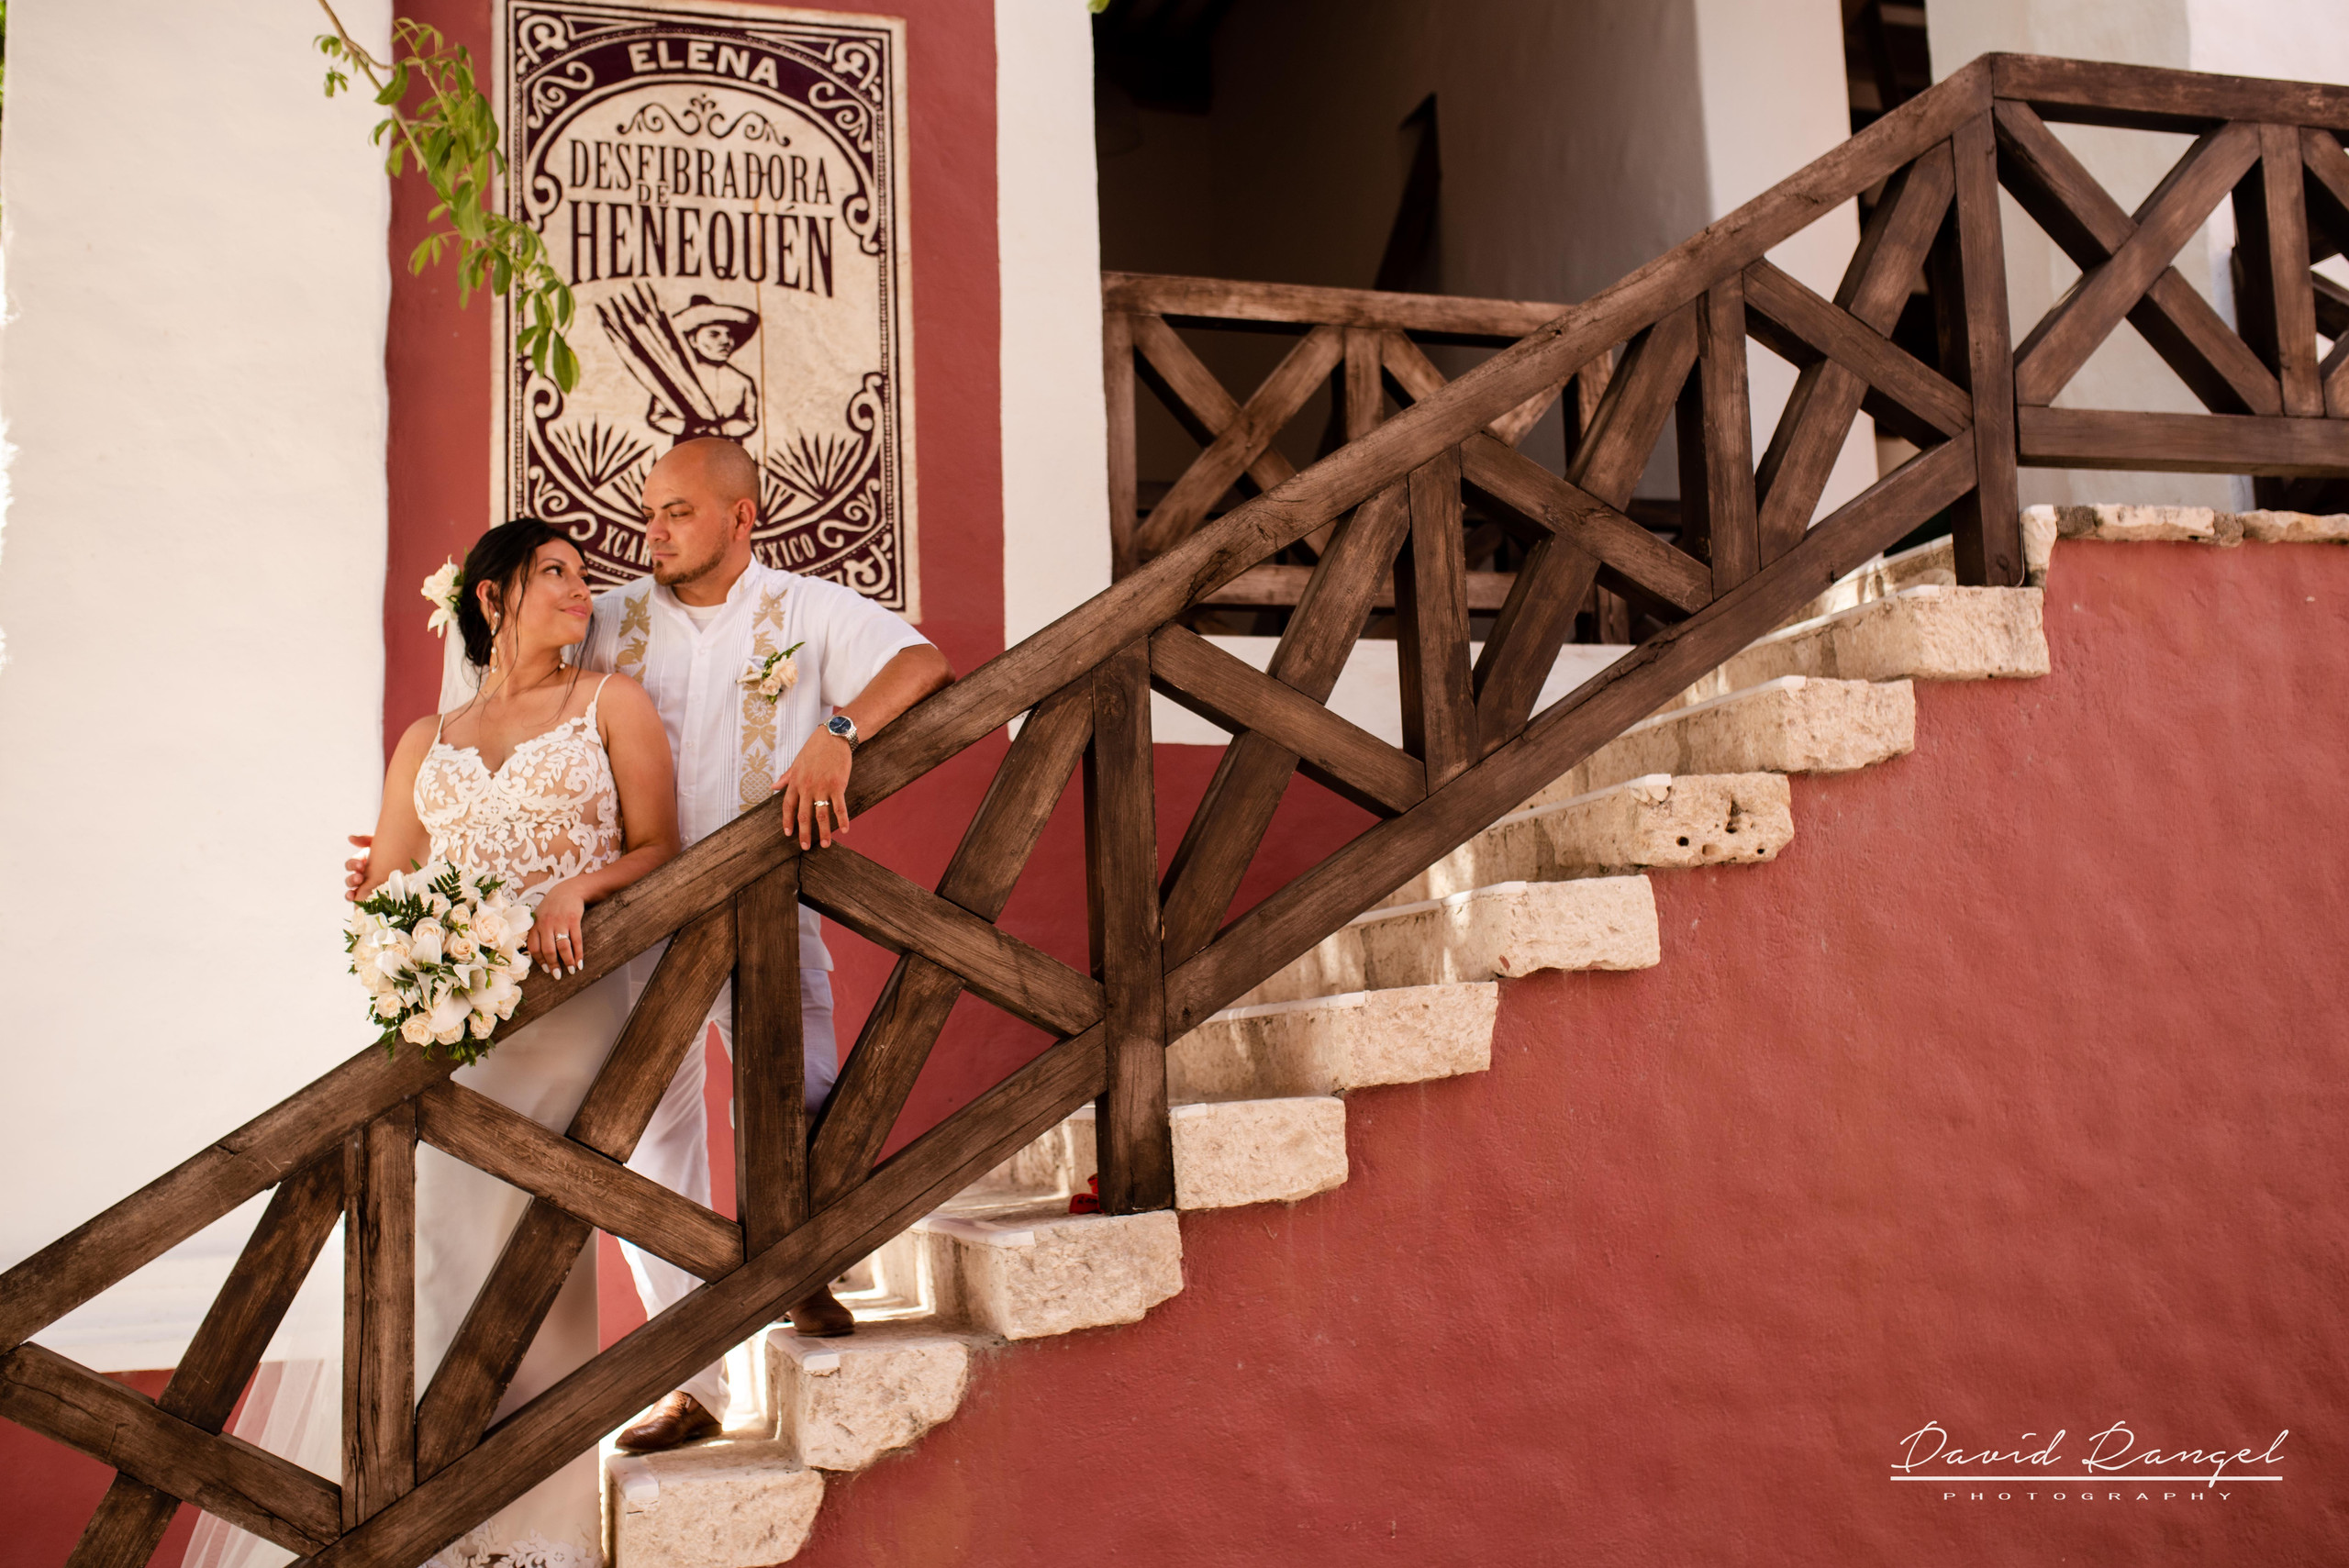 bride+groom+photo+wedding+tradition+hacienda+xcaret+stairs+bouquet+dress+outfit